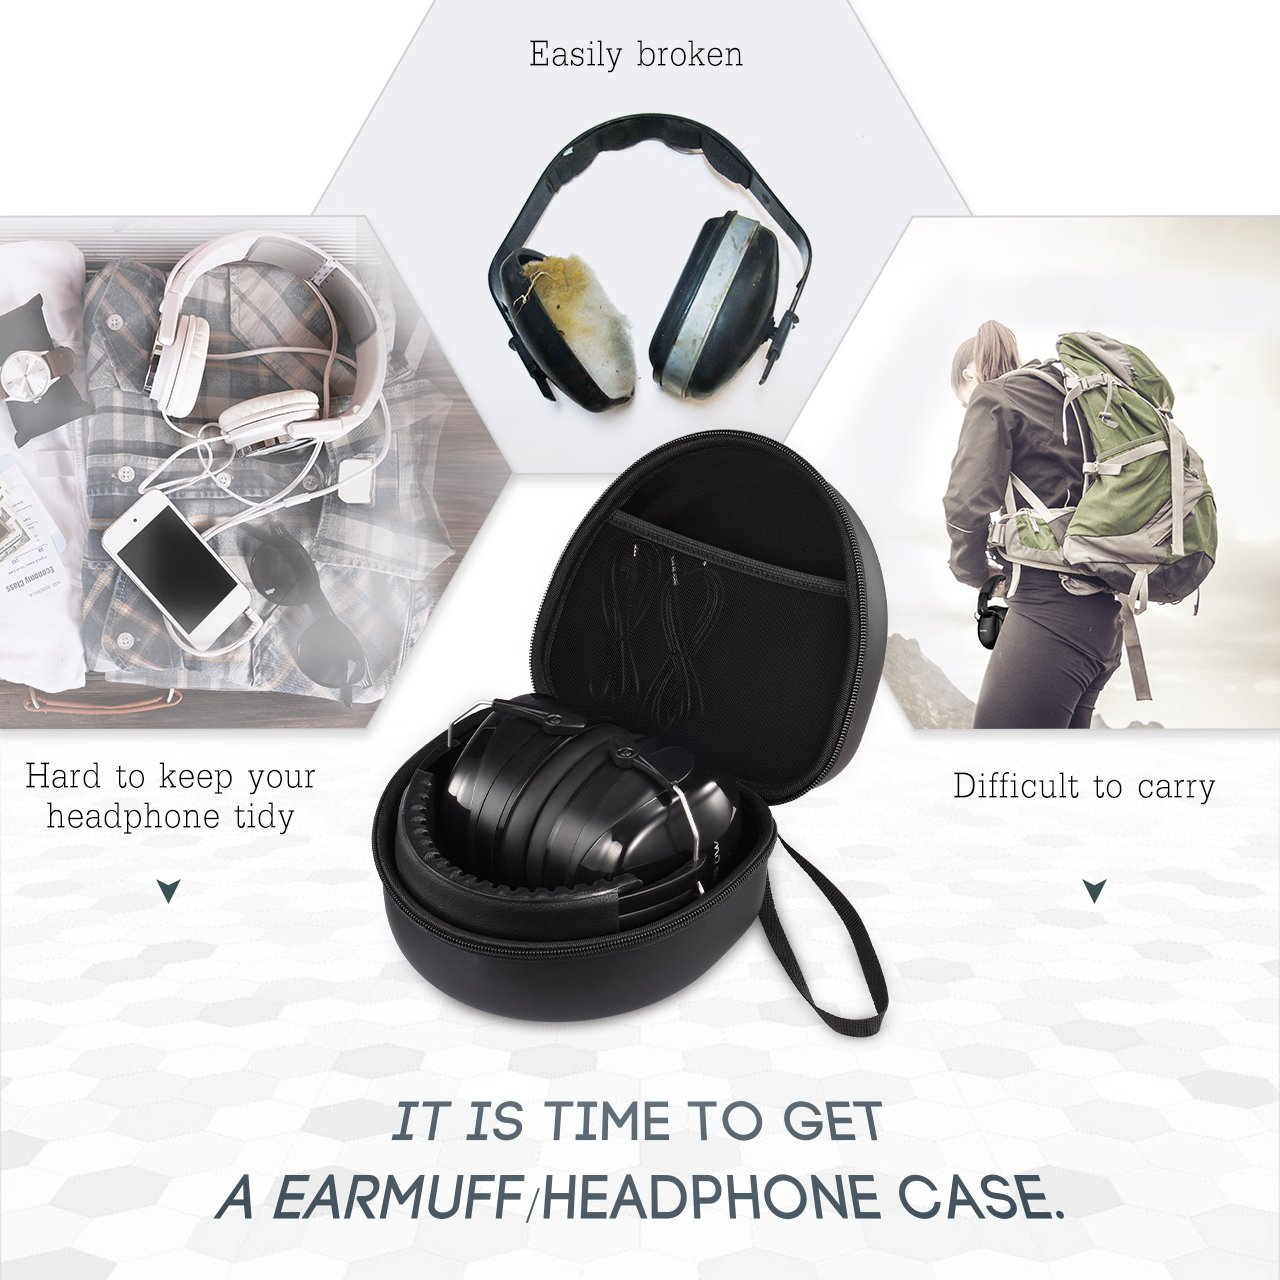 Mpow Earmuff Case for Mpow 035/068/108 Noise Reduction Safety Ear Muffs, Hard Travel Case EVA Hardshell for Mpow 059/H1/H2/H5 Foldable Headphone, Travel Carrying Case with Mesh Pocket for Accessories by Mpow (Image #3)